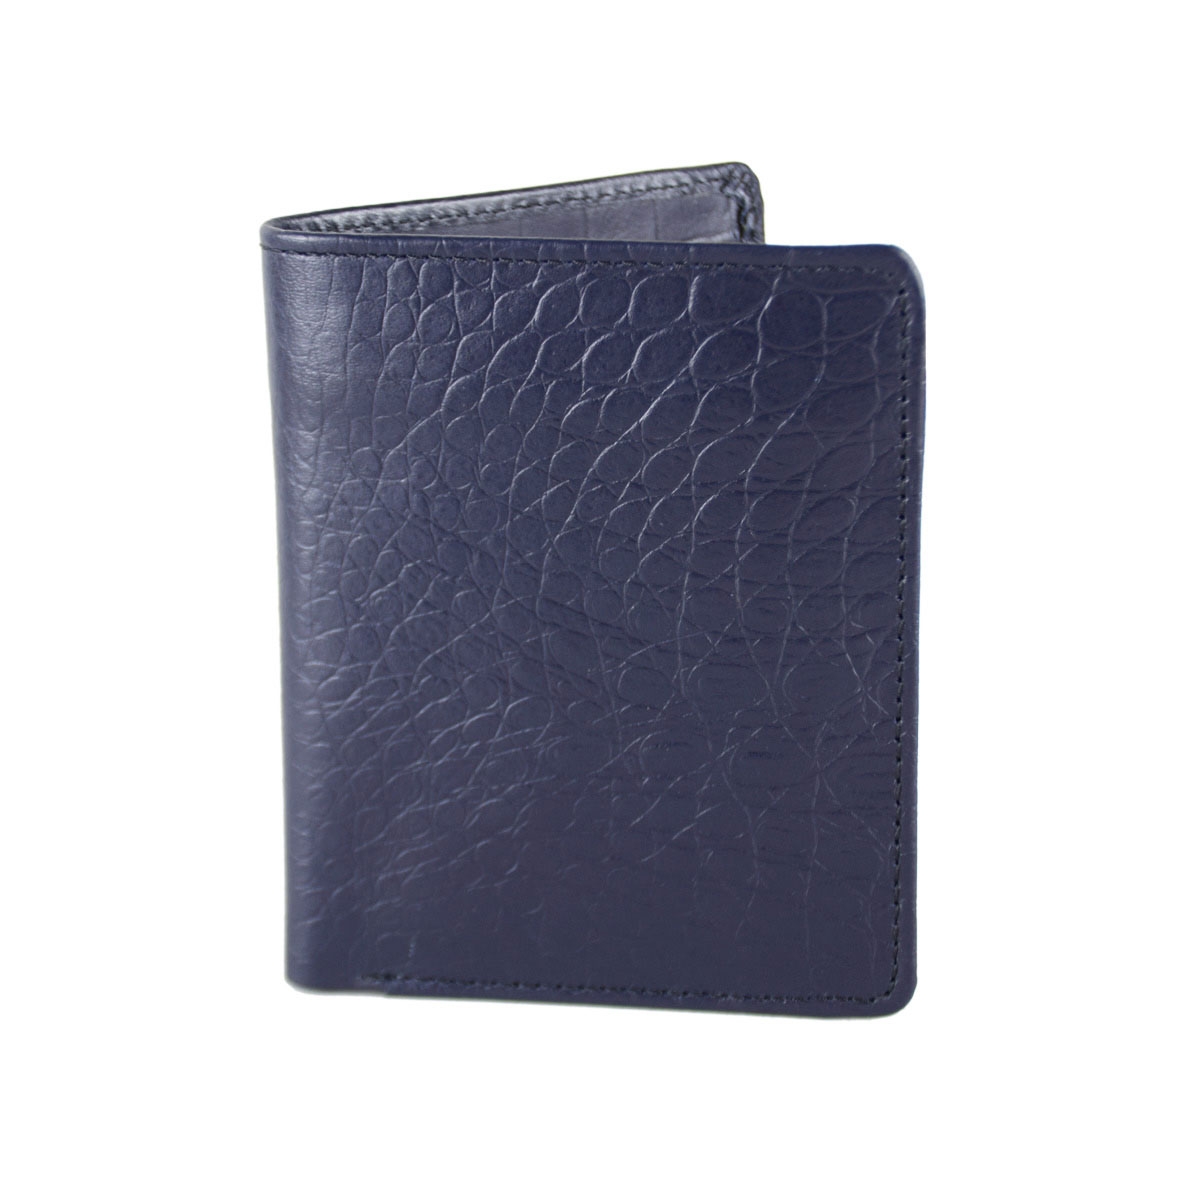 BLUE WALLET WITH CENTRAL ZIP